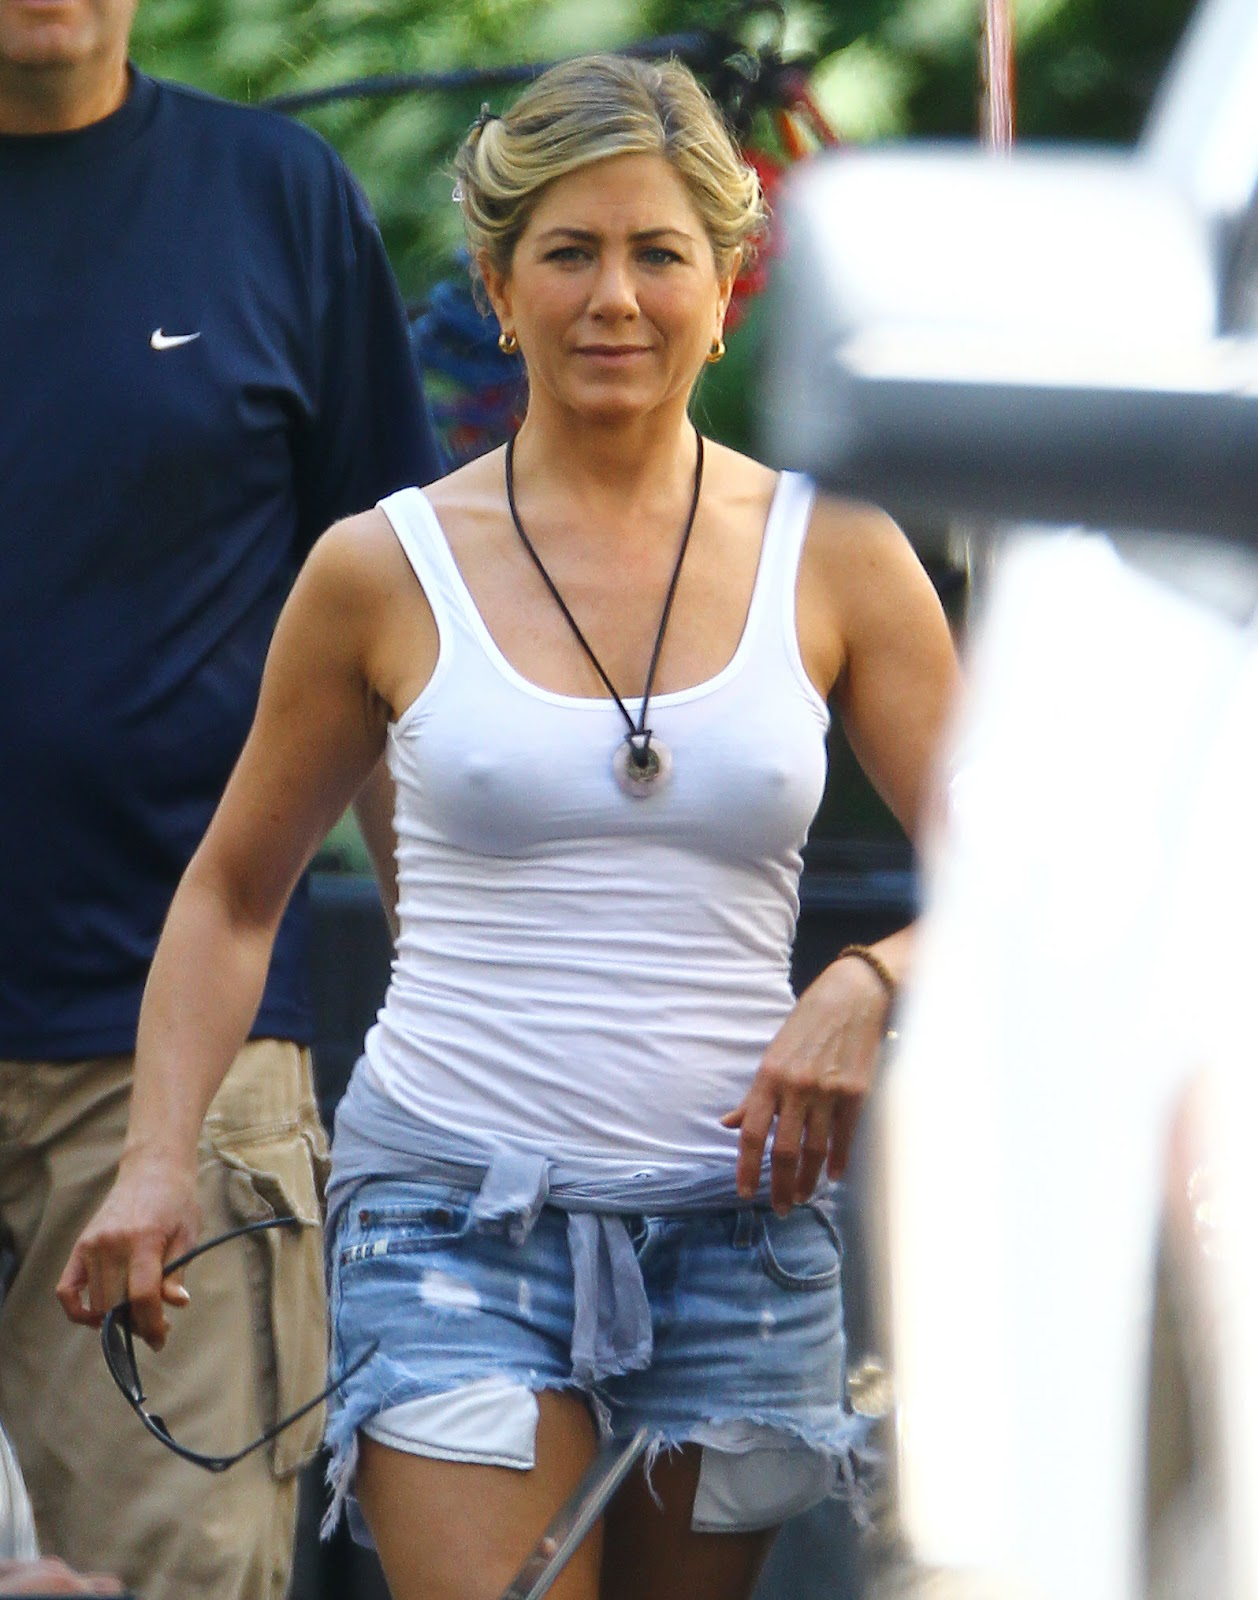 http://1.bp.blogspot.com/-LFHyGpBOqBc/UCAbVpJfe4I/AAAAAAAAU_o/I8tkCmbAM2w/s1600/Jennifer+Aniston+Pokies+on+the+set+of+We\'re+the+Millers+in+Wilmington+August+2,+2012+1.jpg